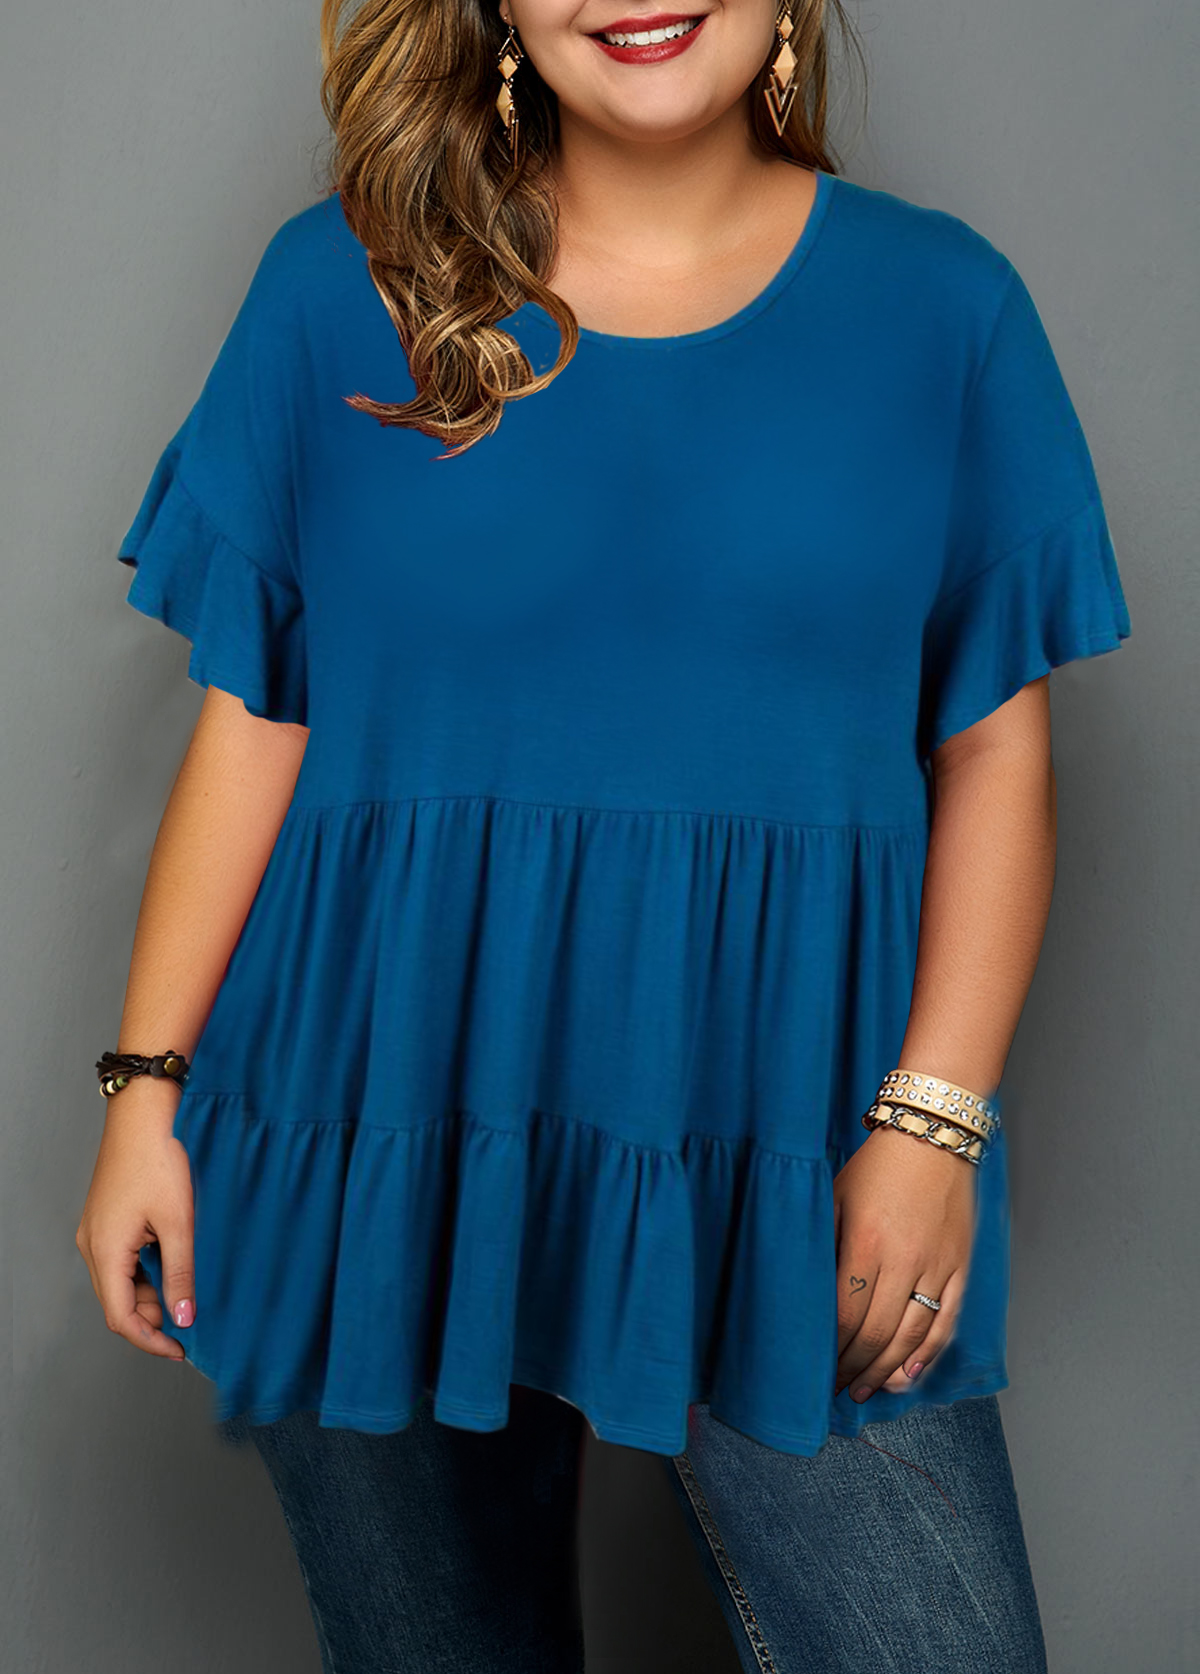 Ruffle Hem Flare Sleeve Navy Blue Blouse